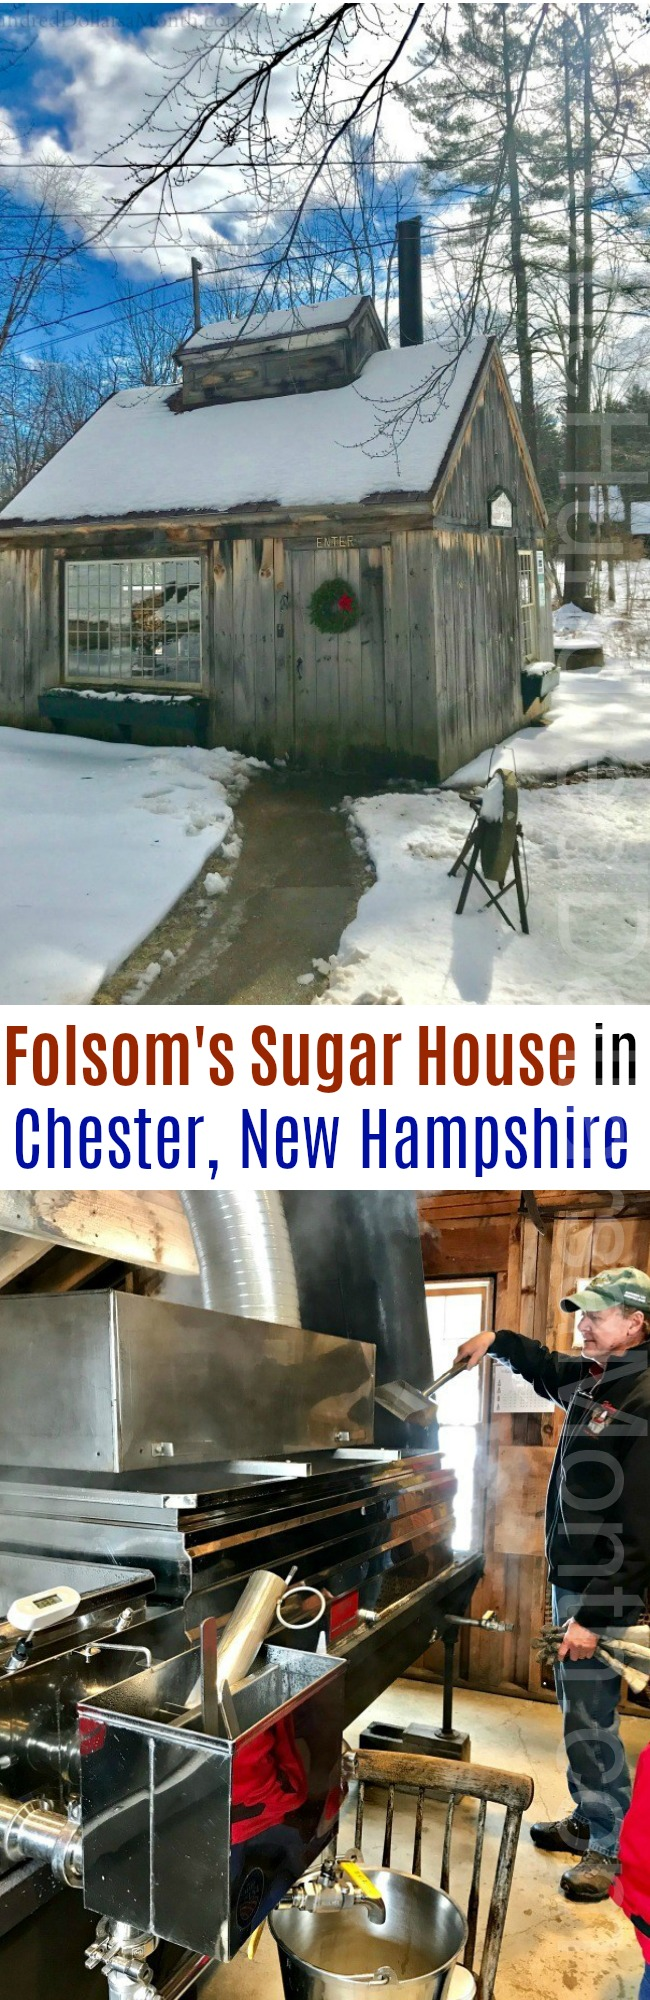 Folsom's Sugar House in Chester, NH